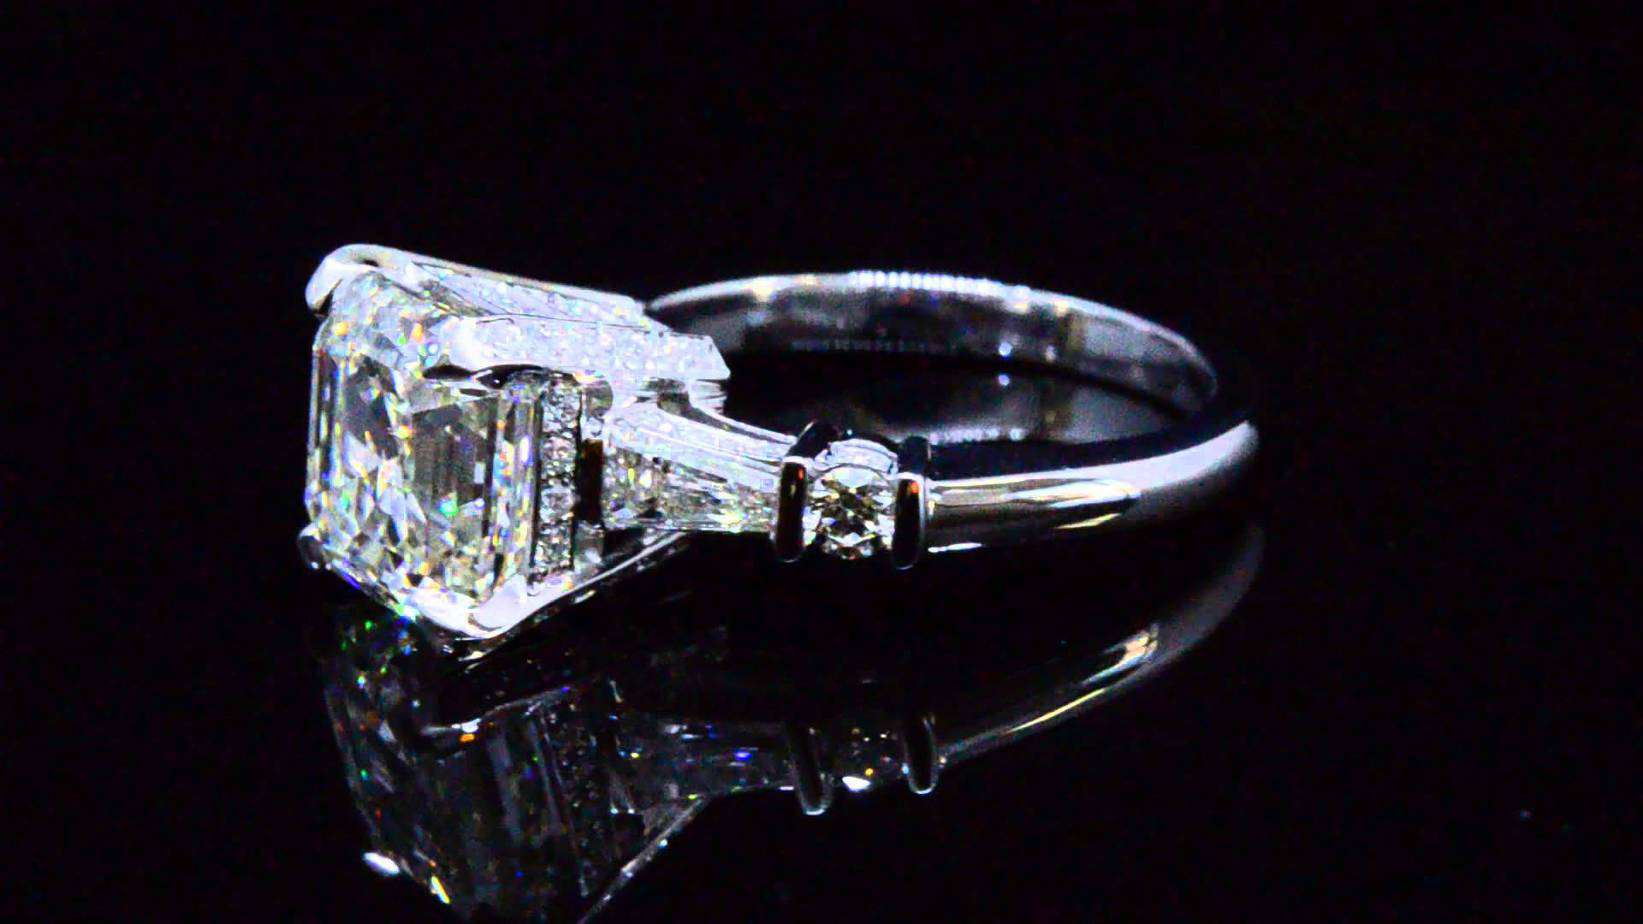 About The Asscher Cut General Information